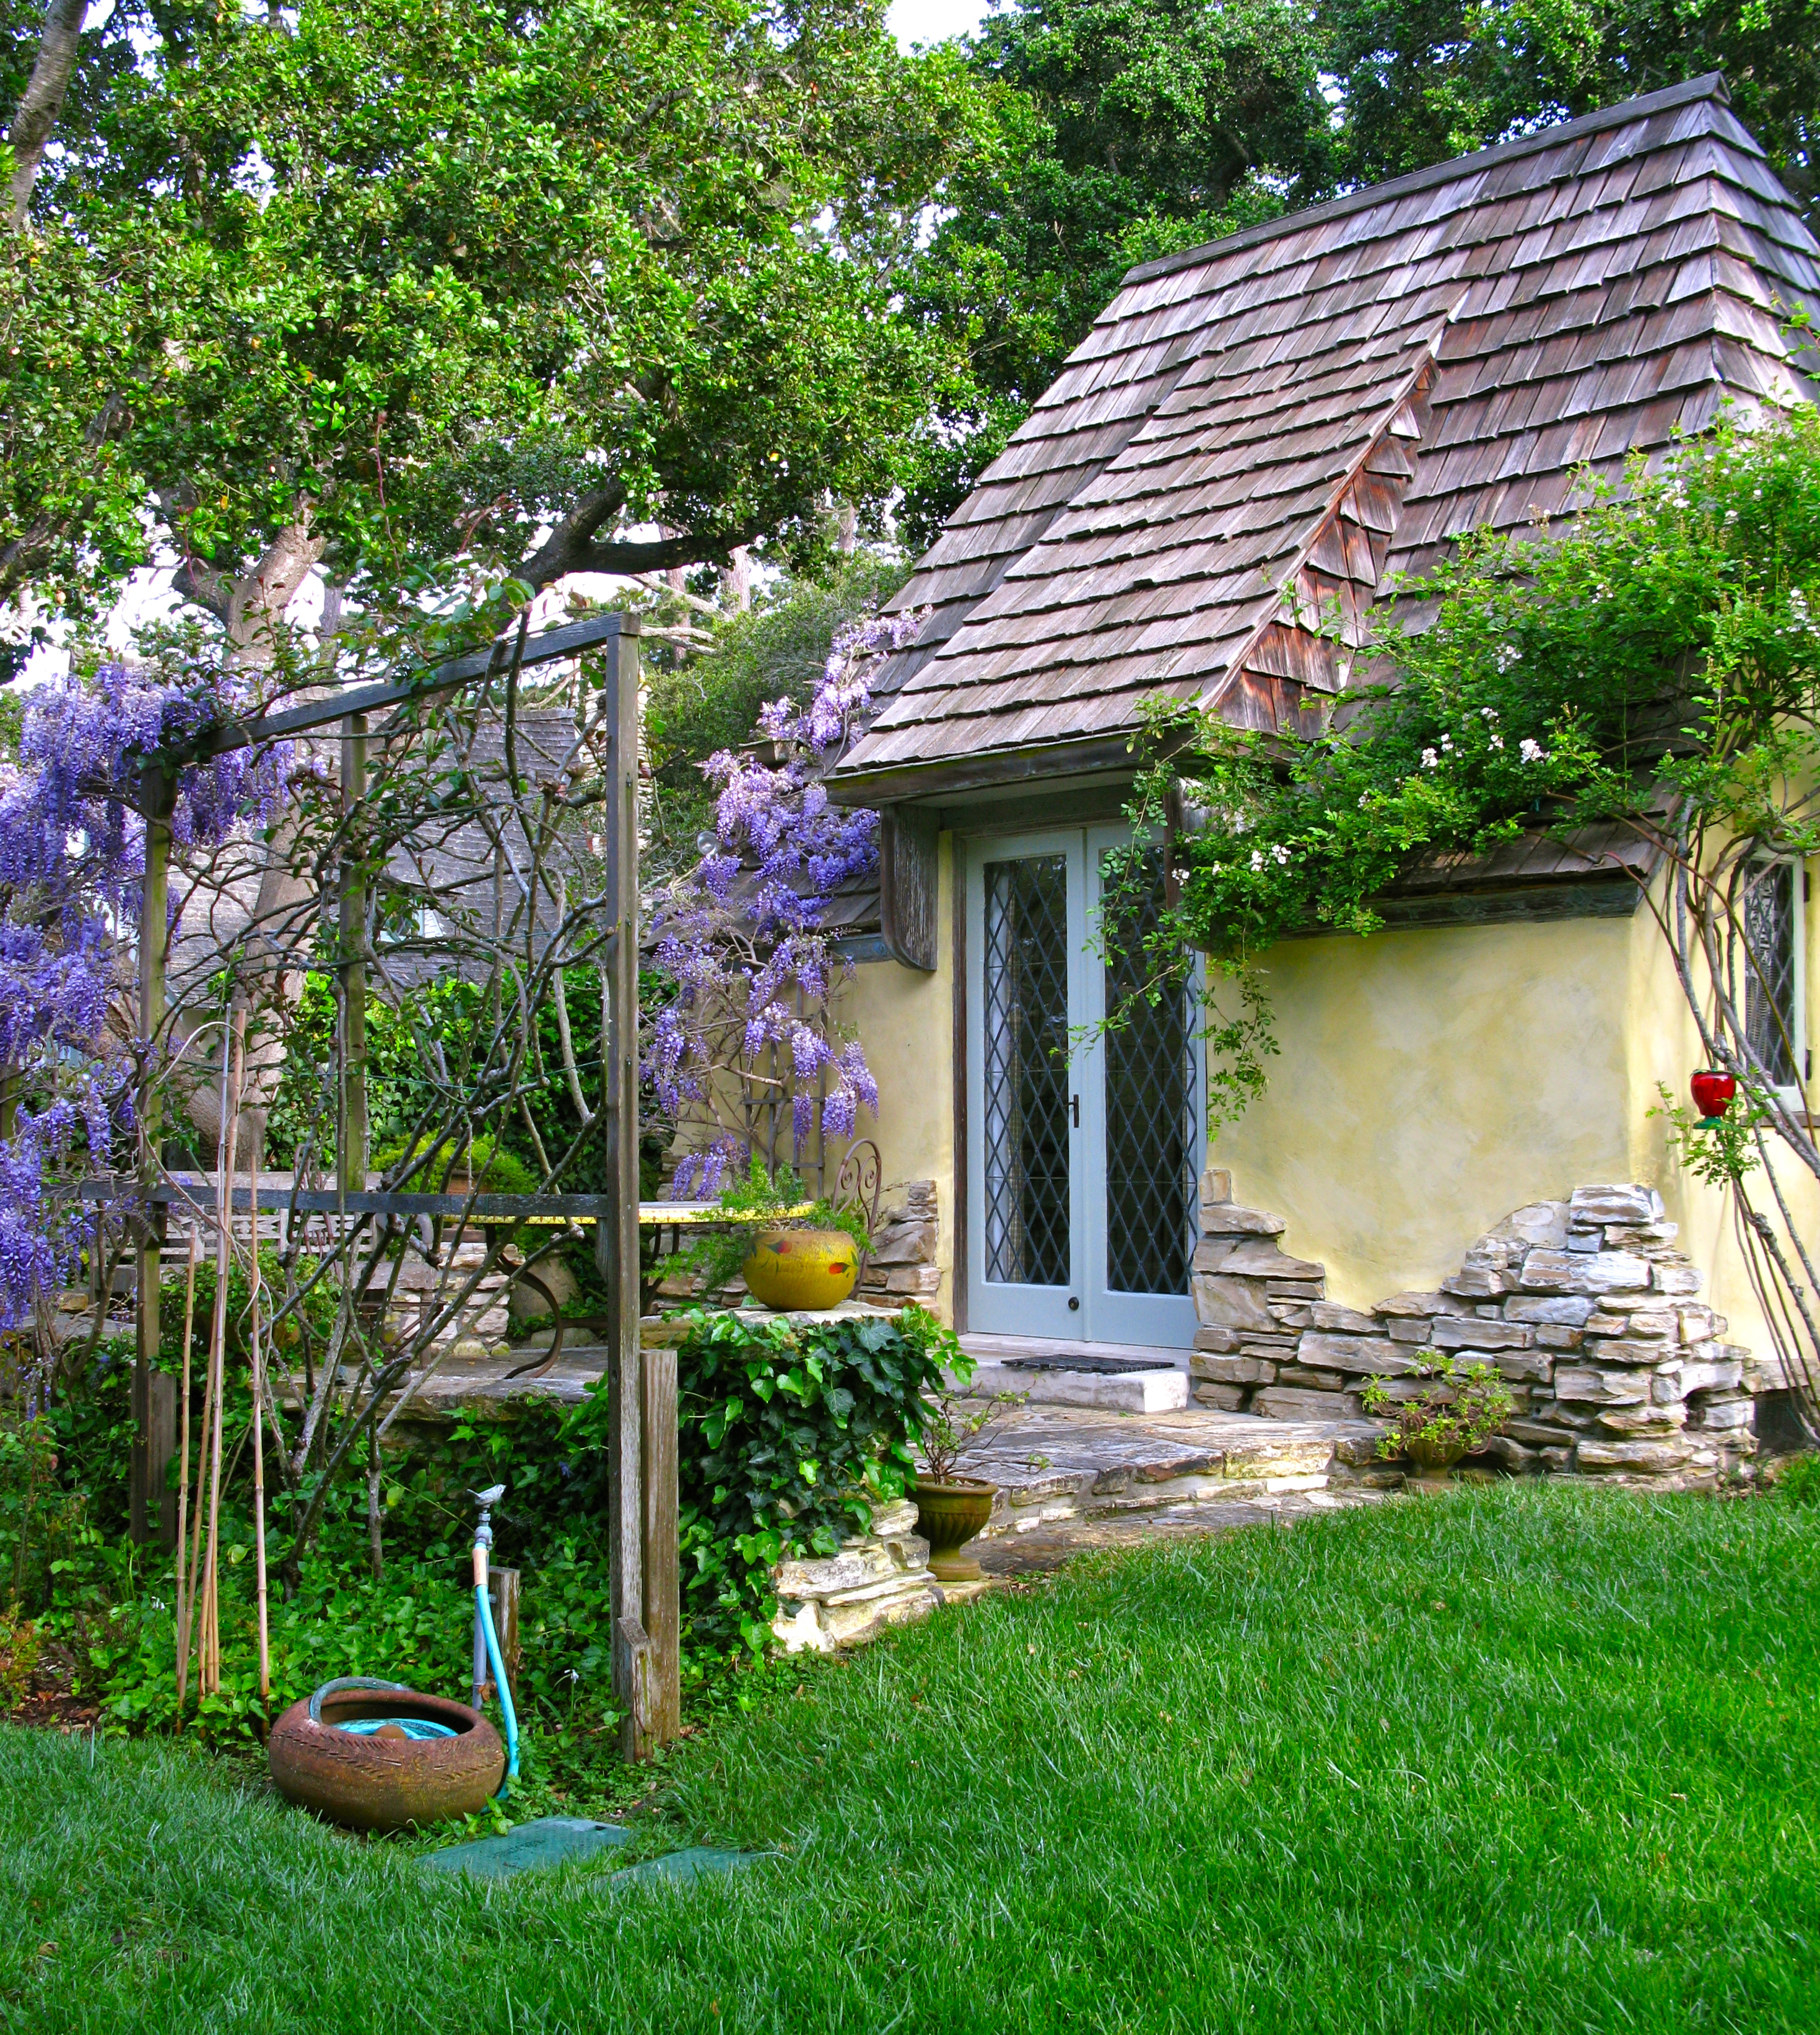 Garden Cottage: It's Time To Add Small Trees